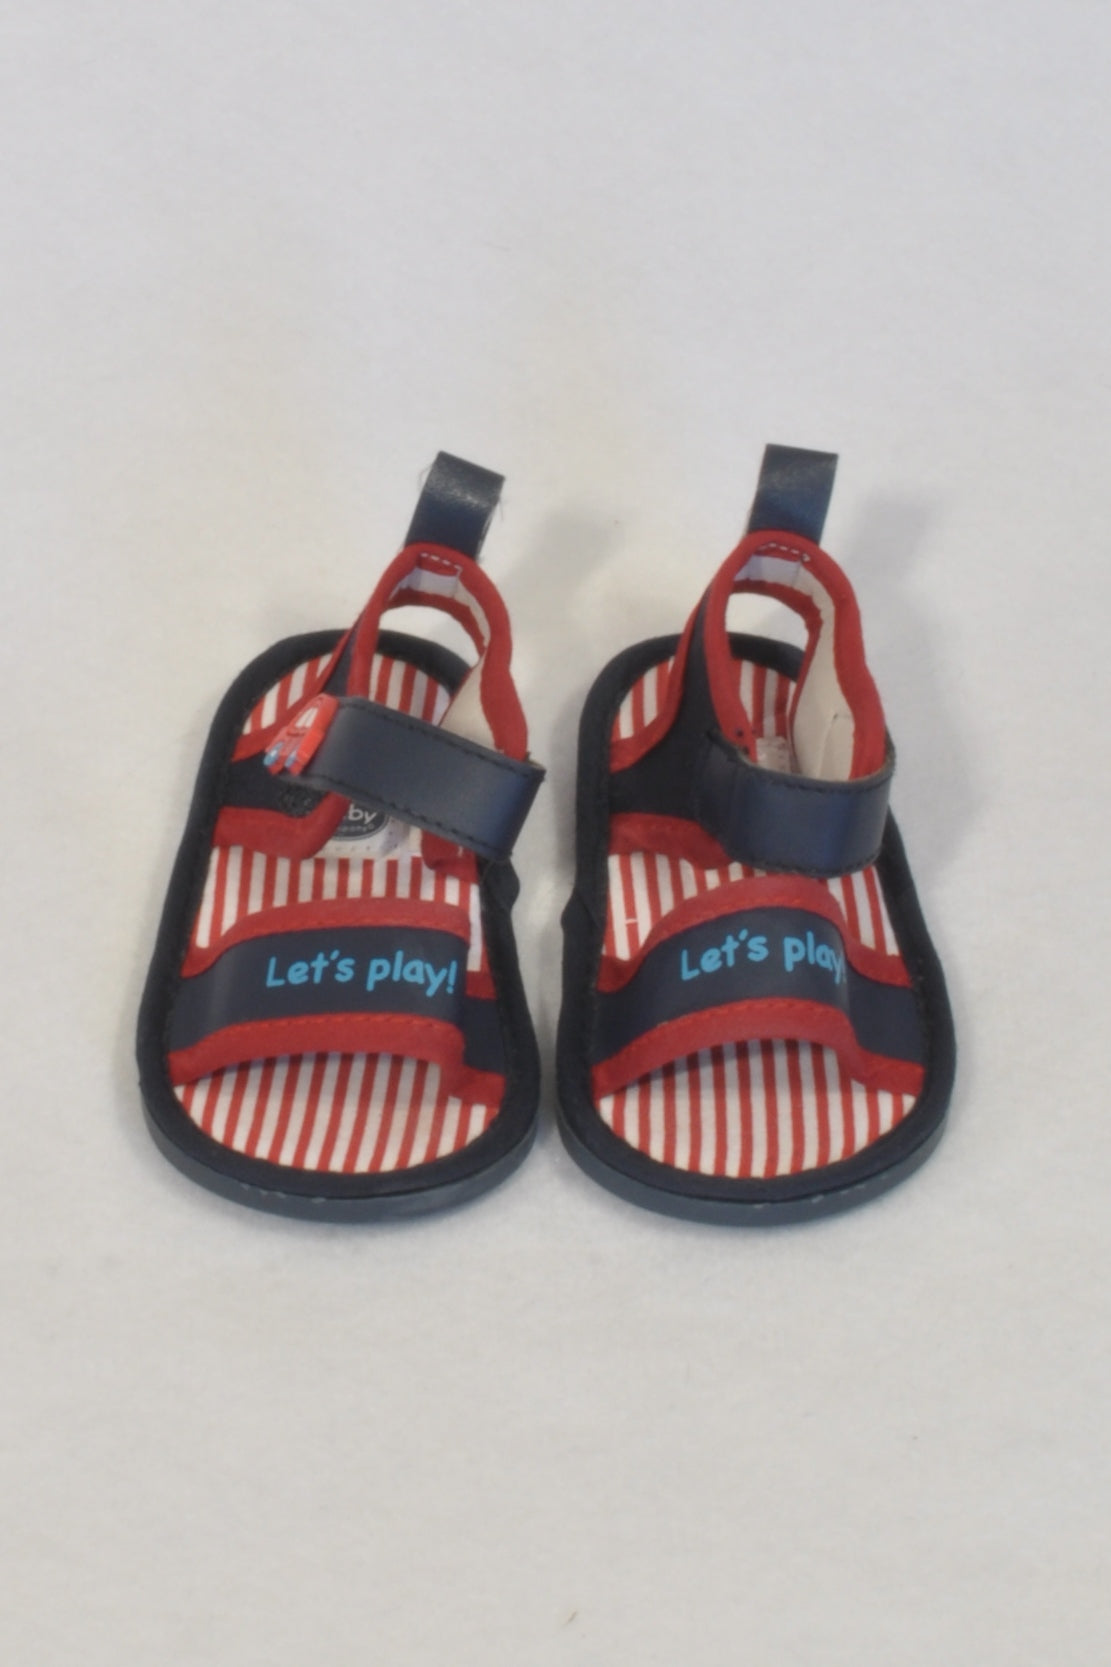 Ackermans Red & Navy Let's Play Size 2 Sandals Boys 6-9 months